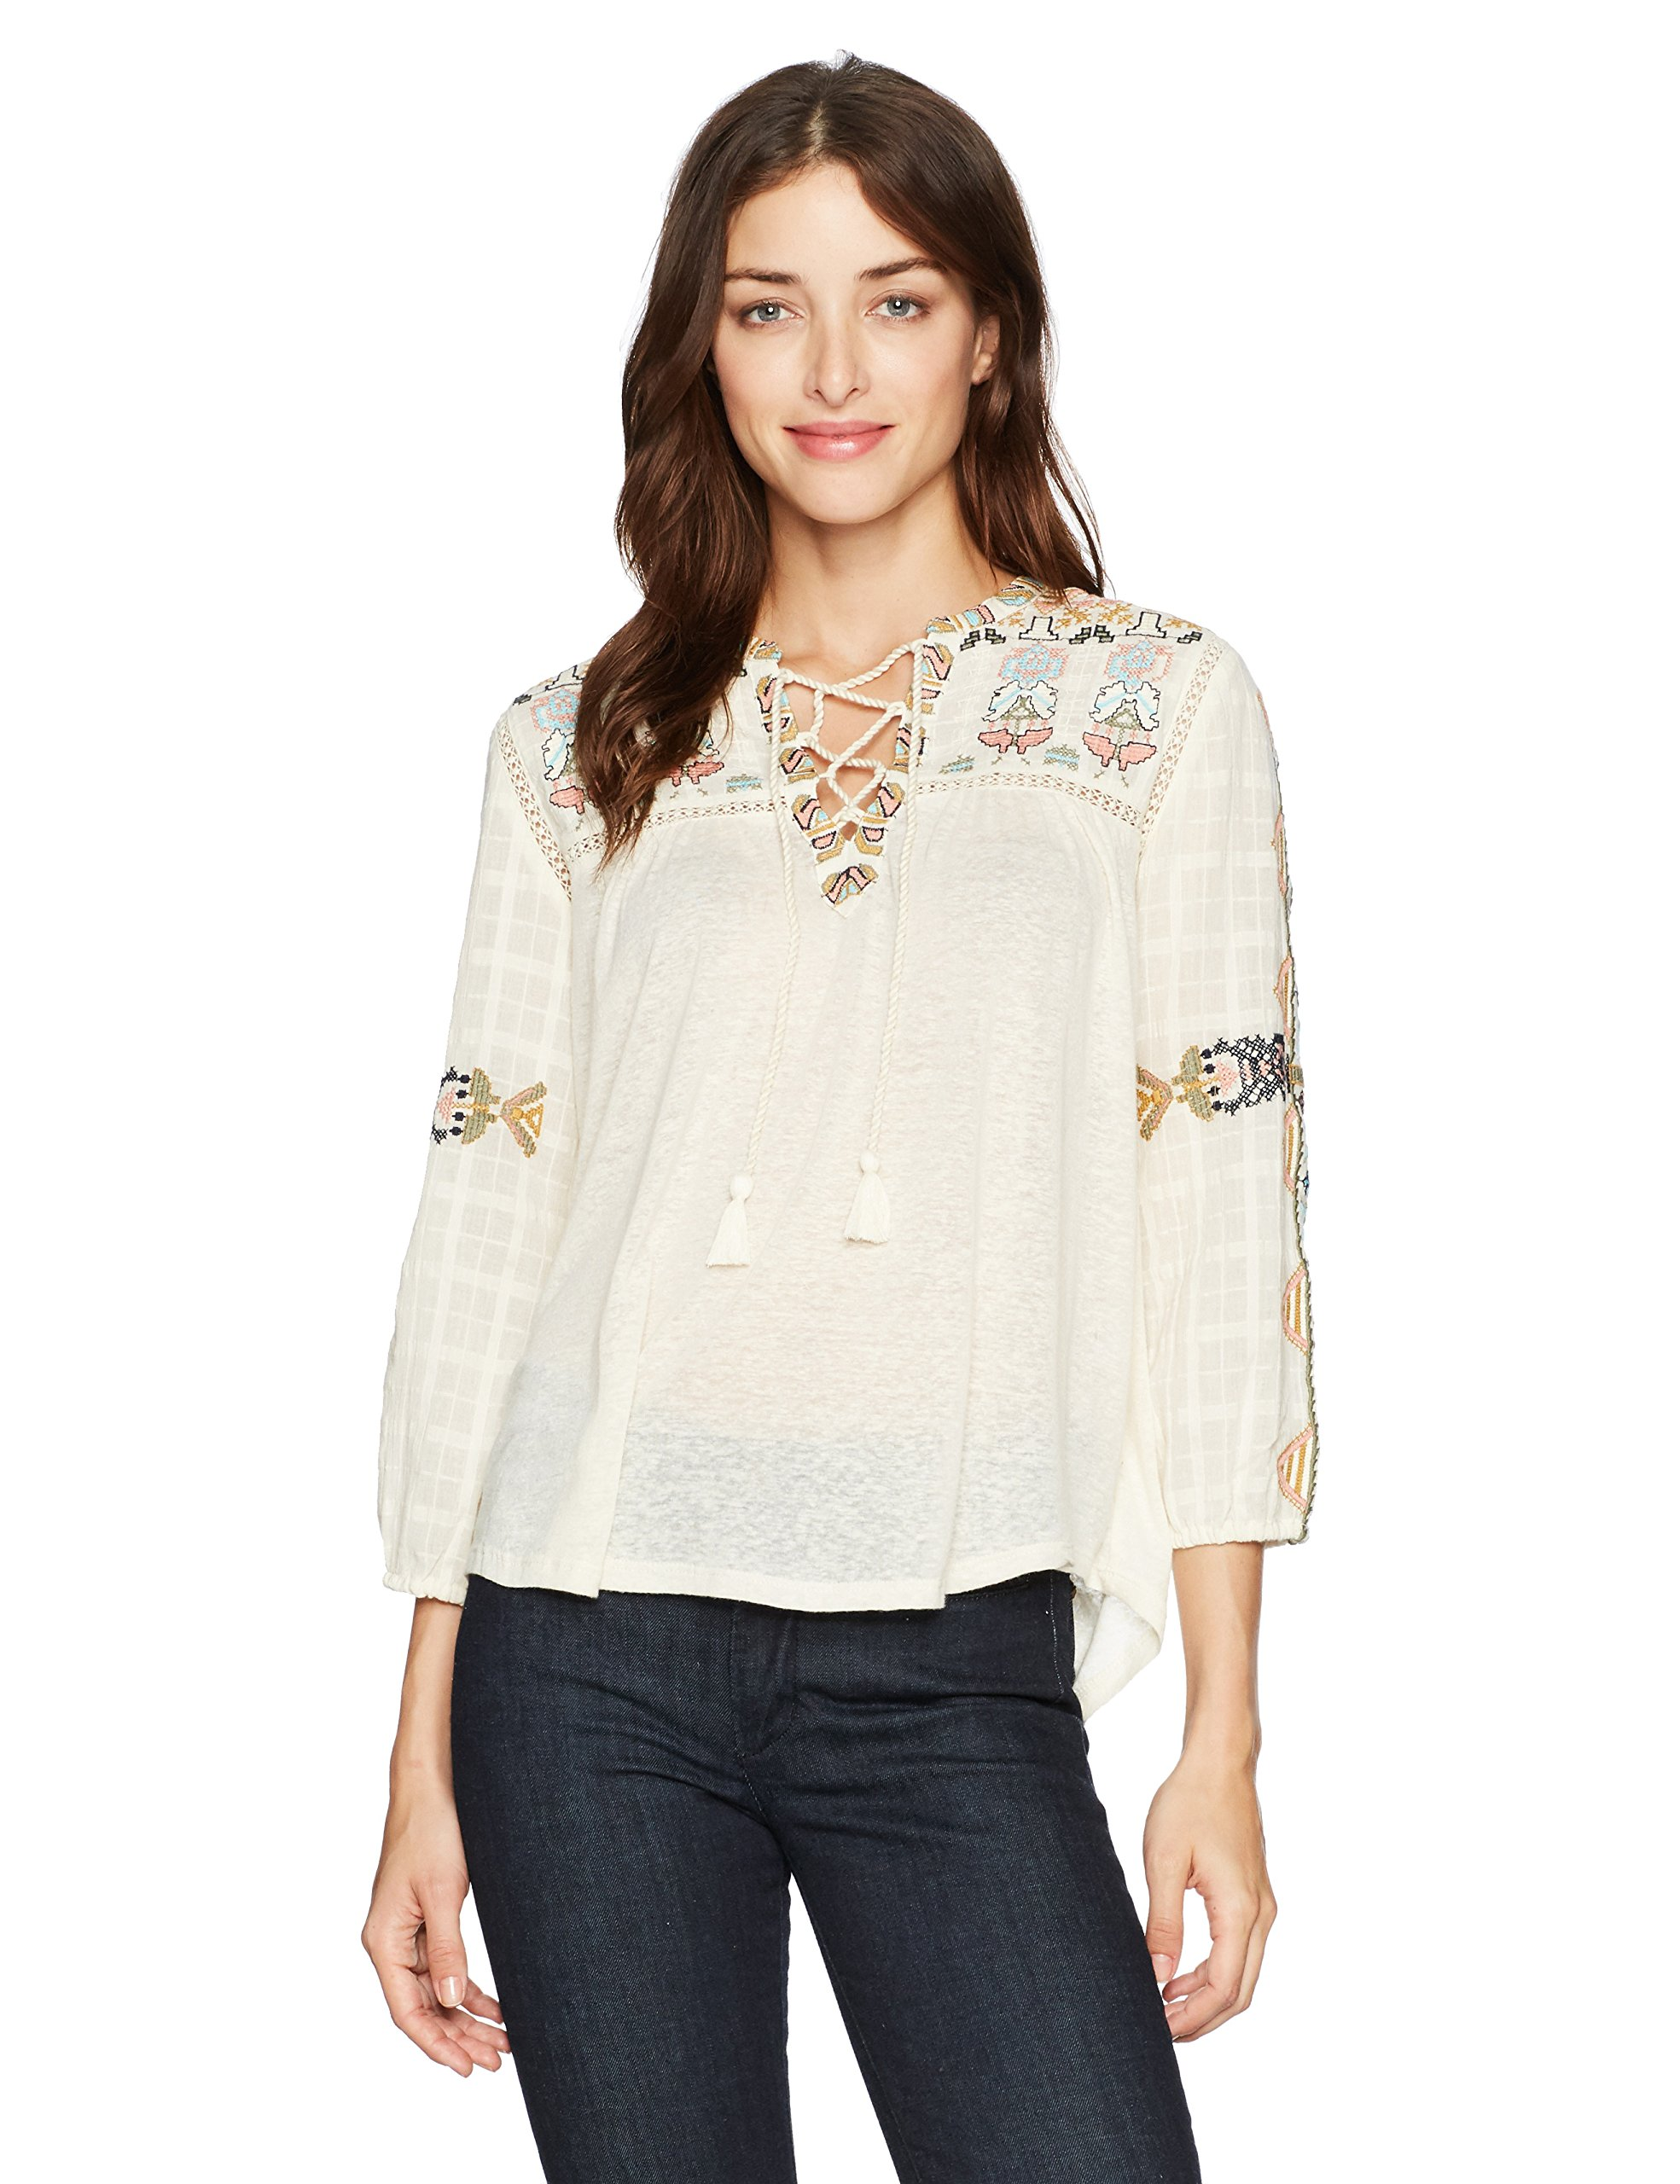 Lucky Brand Women's Lace up Embroidered Top, Natural, Small